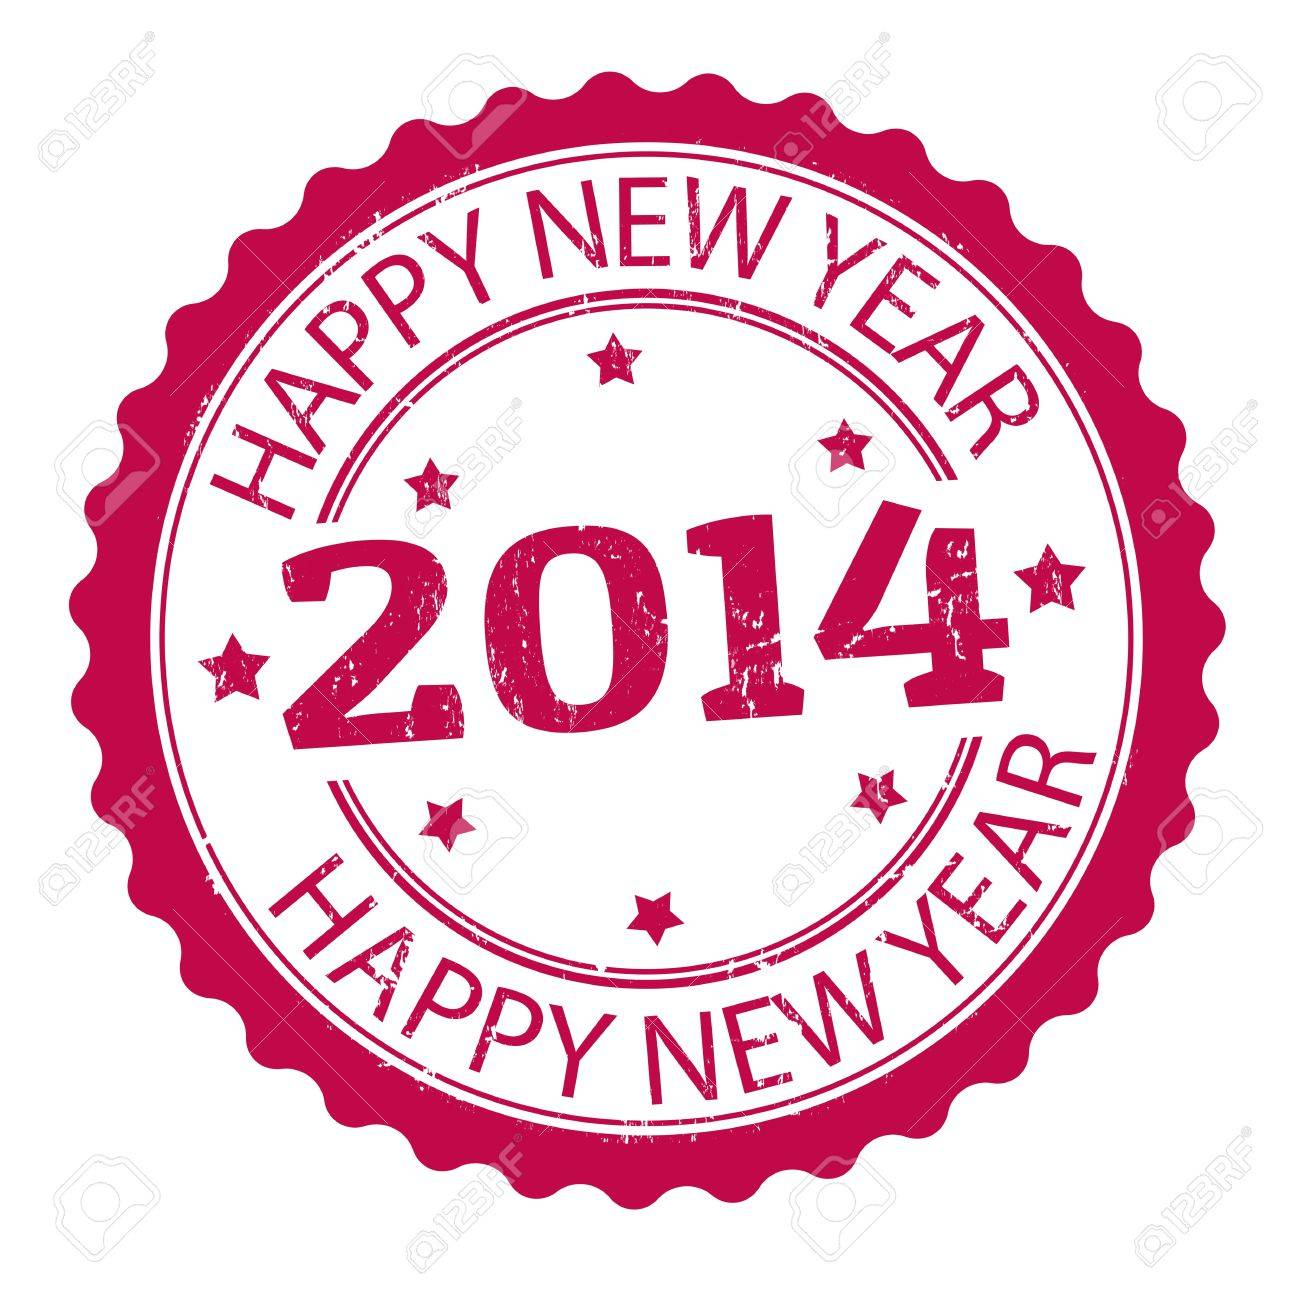 Happy new year 2014 grunge rubber stamp, vector illustration Stock Vector - 21313885